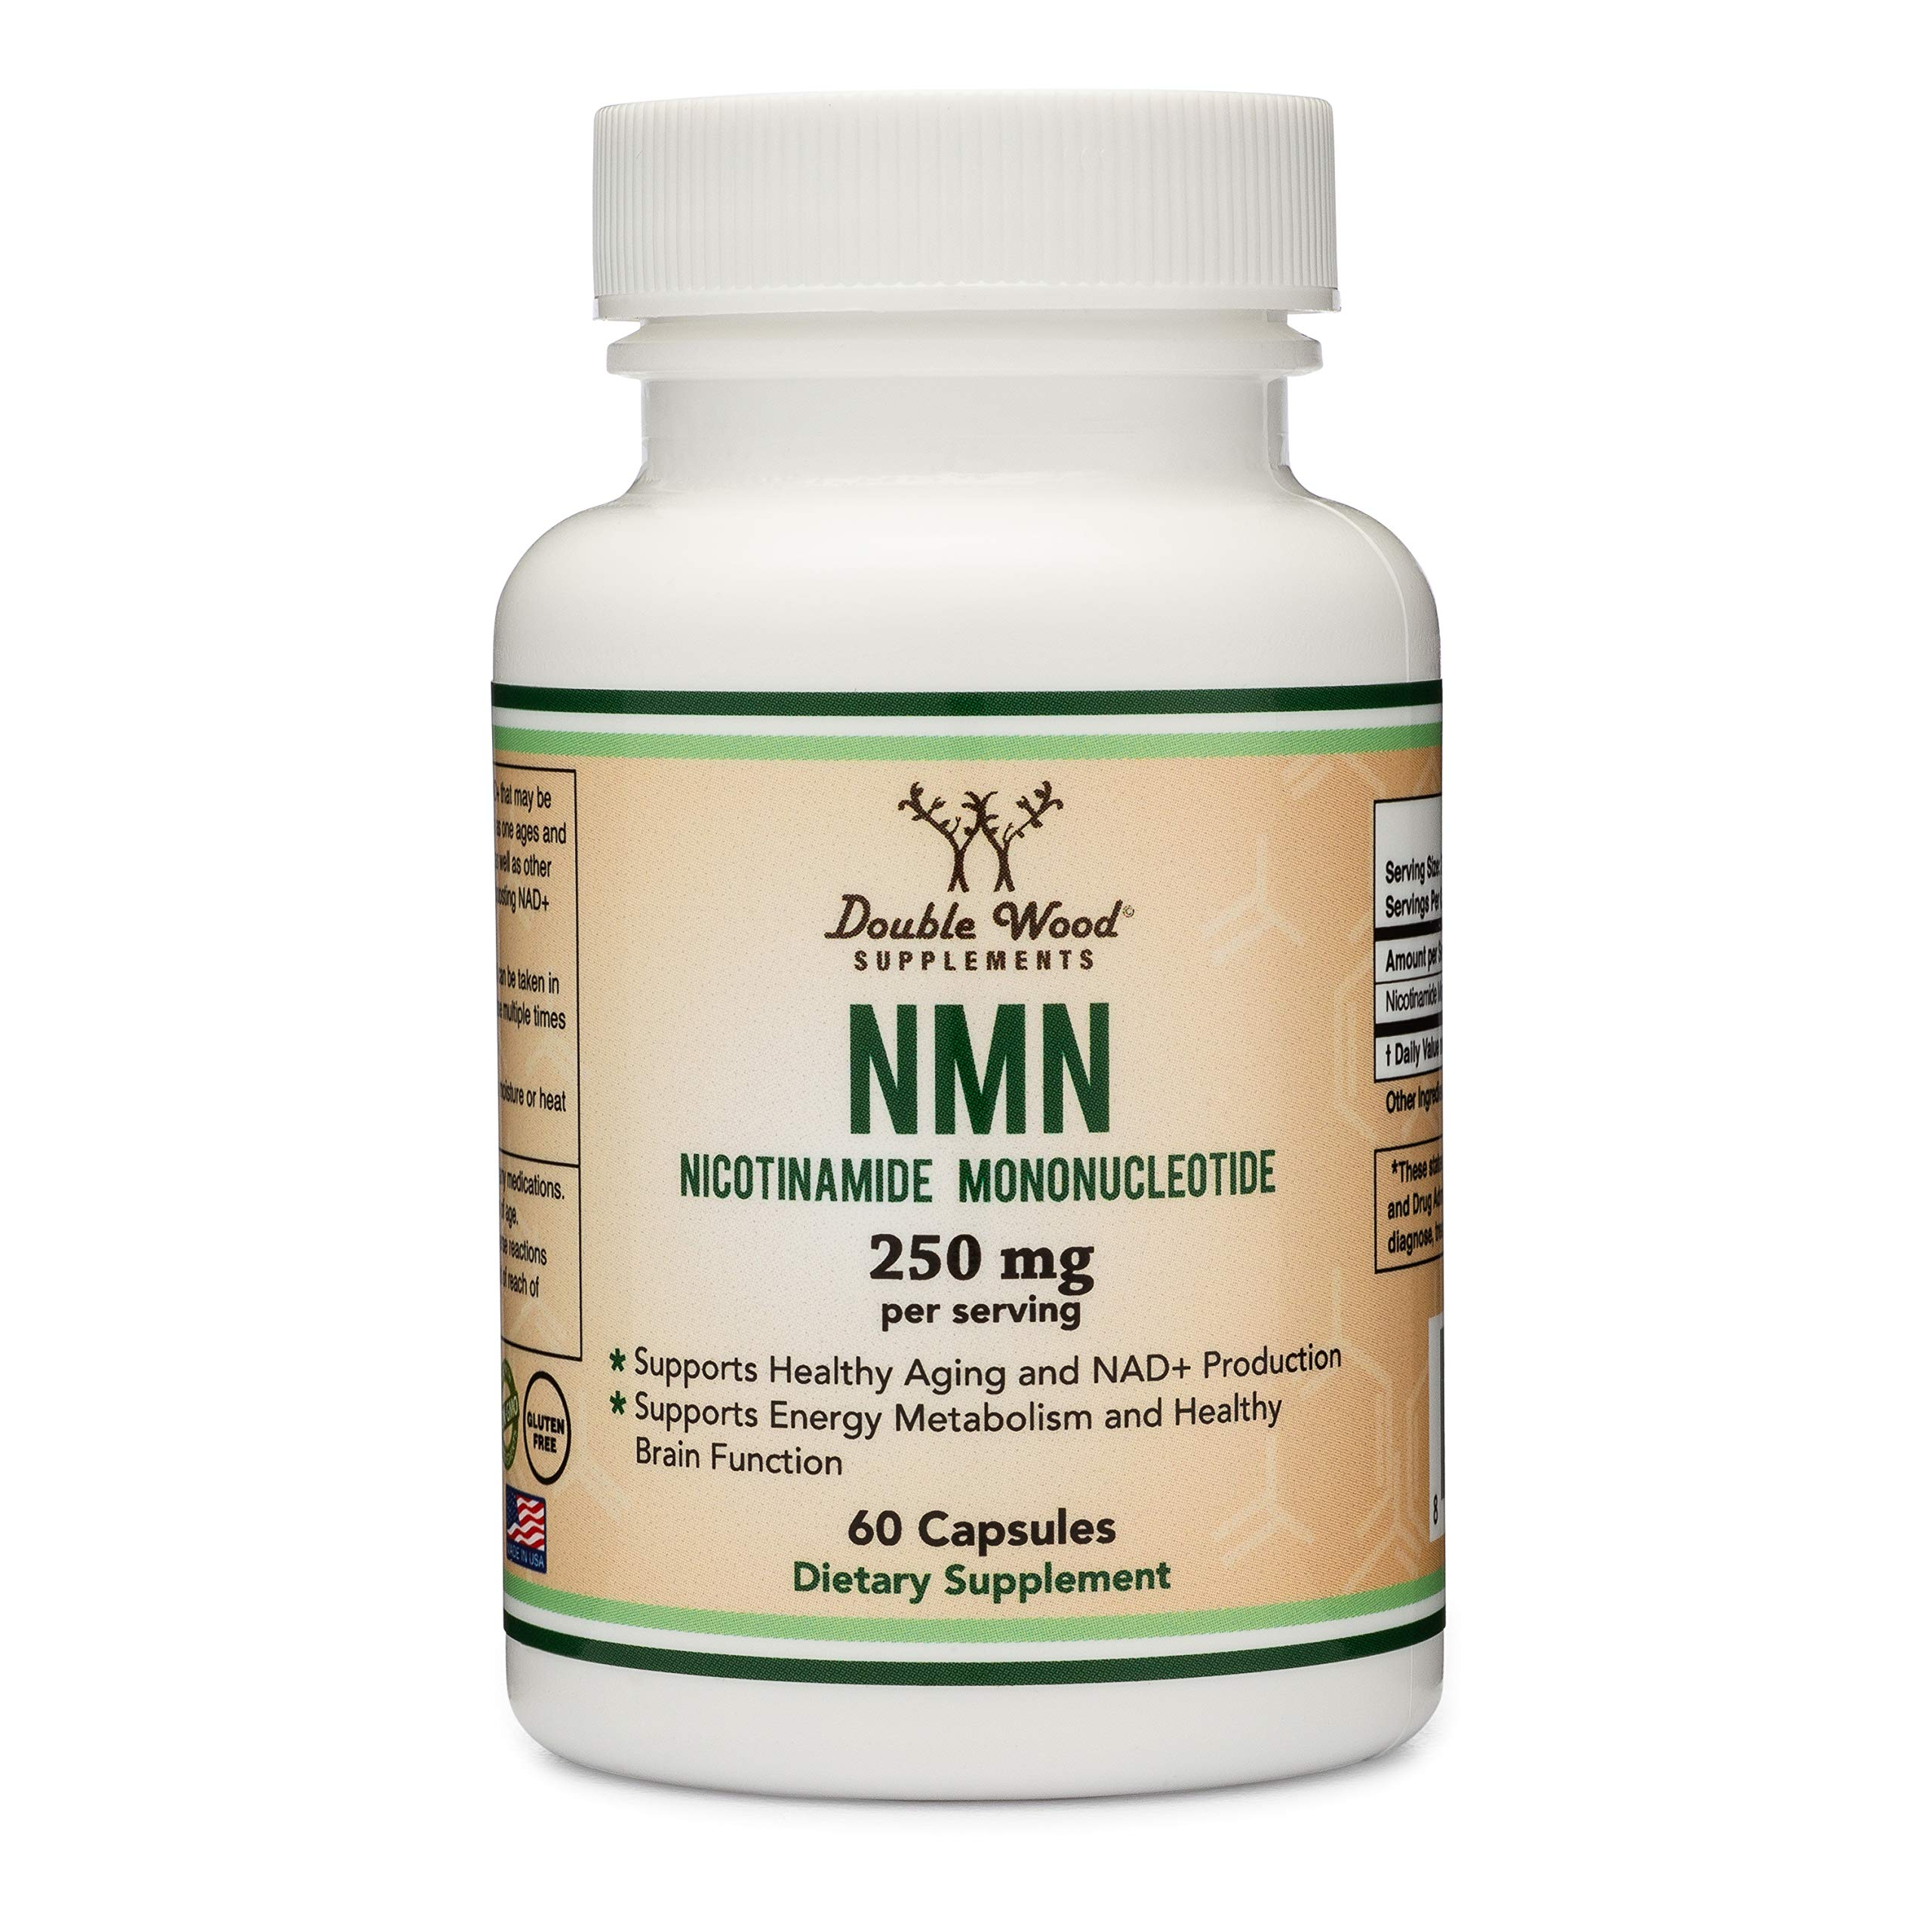 NMN Supplement 250mg Per Serving (Nicotinamide Mononucleotide), Third Party Tested, to Boost NAD+ Levels Similarly to Riboside for Anti Aging by Double Wood Supplements (125mg Per Cap, 60 Capsules) by Double Wood Supplements